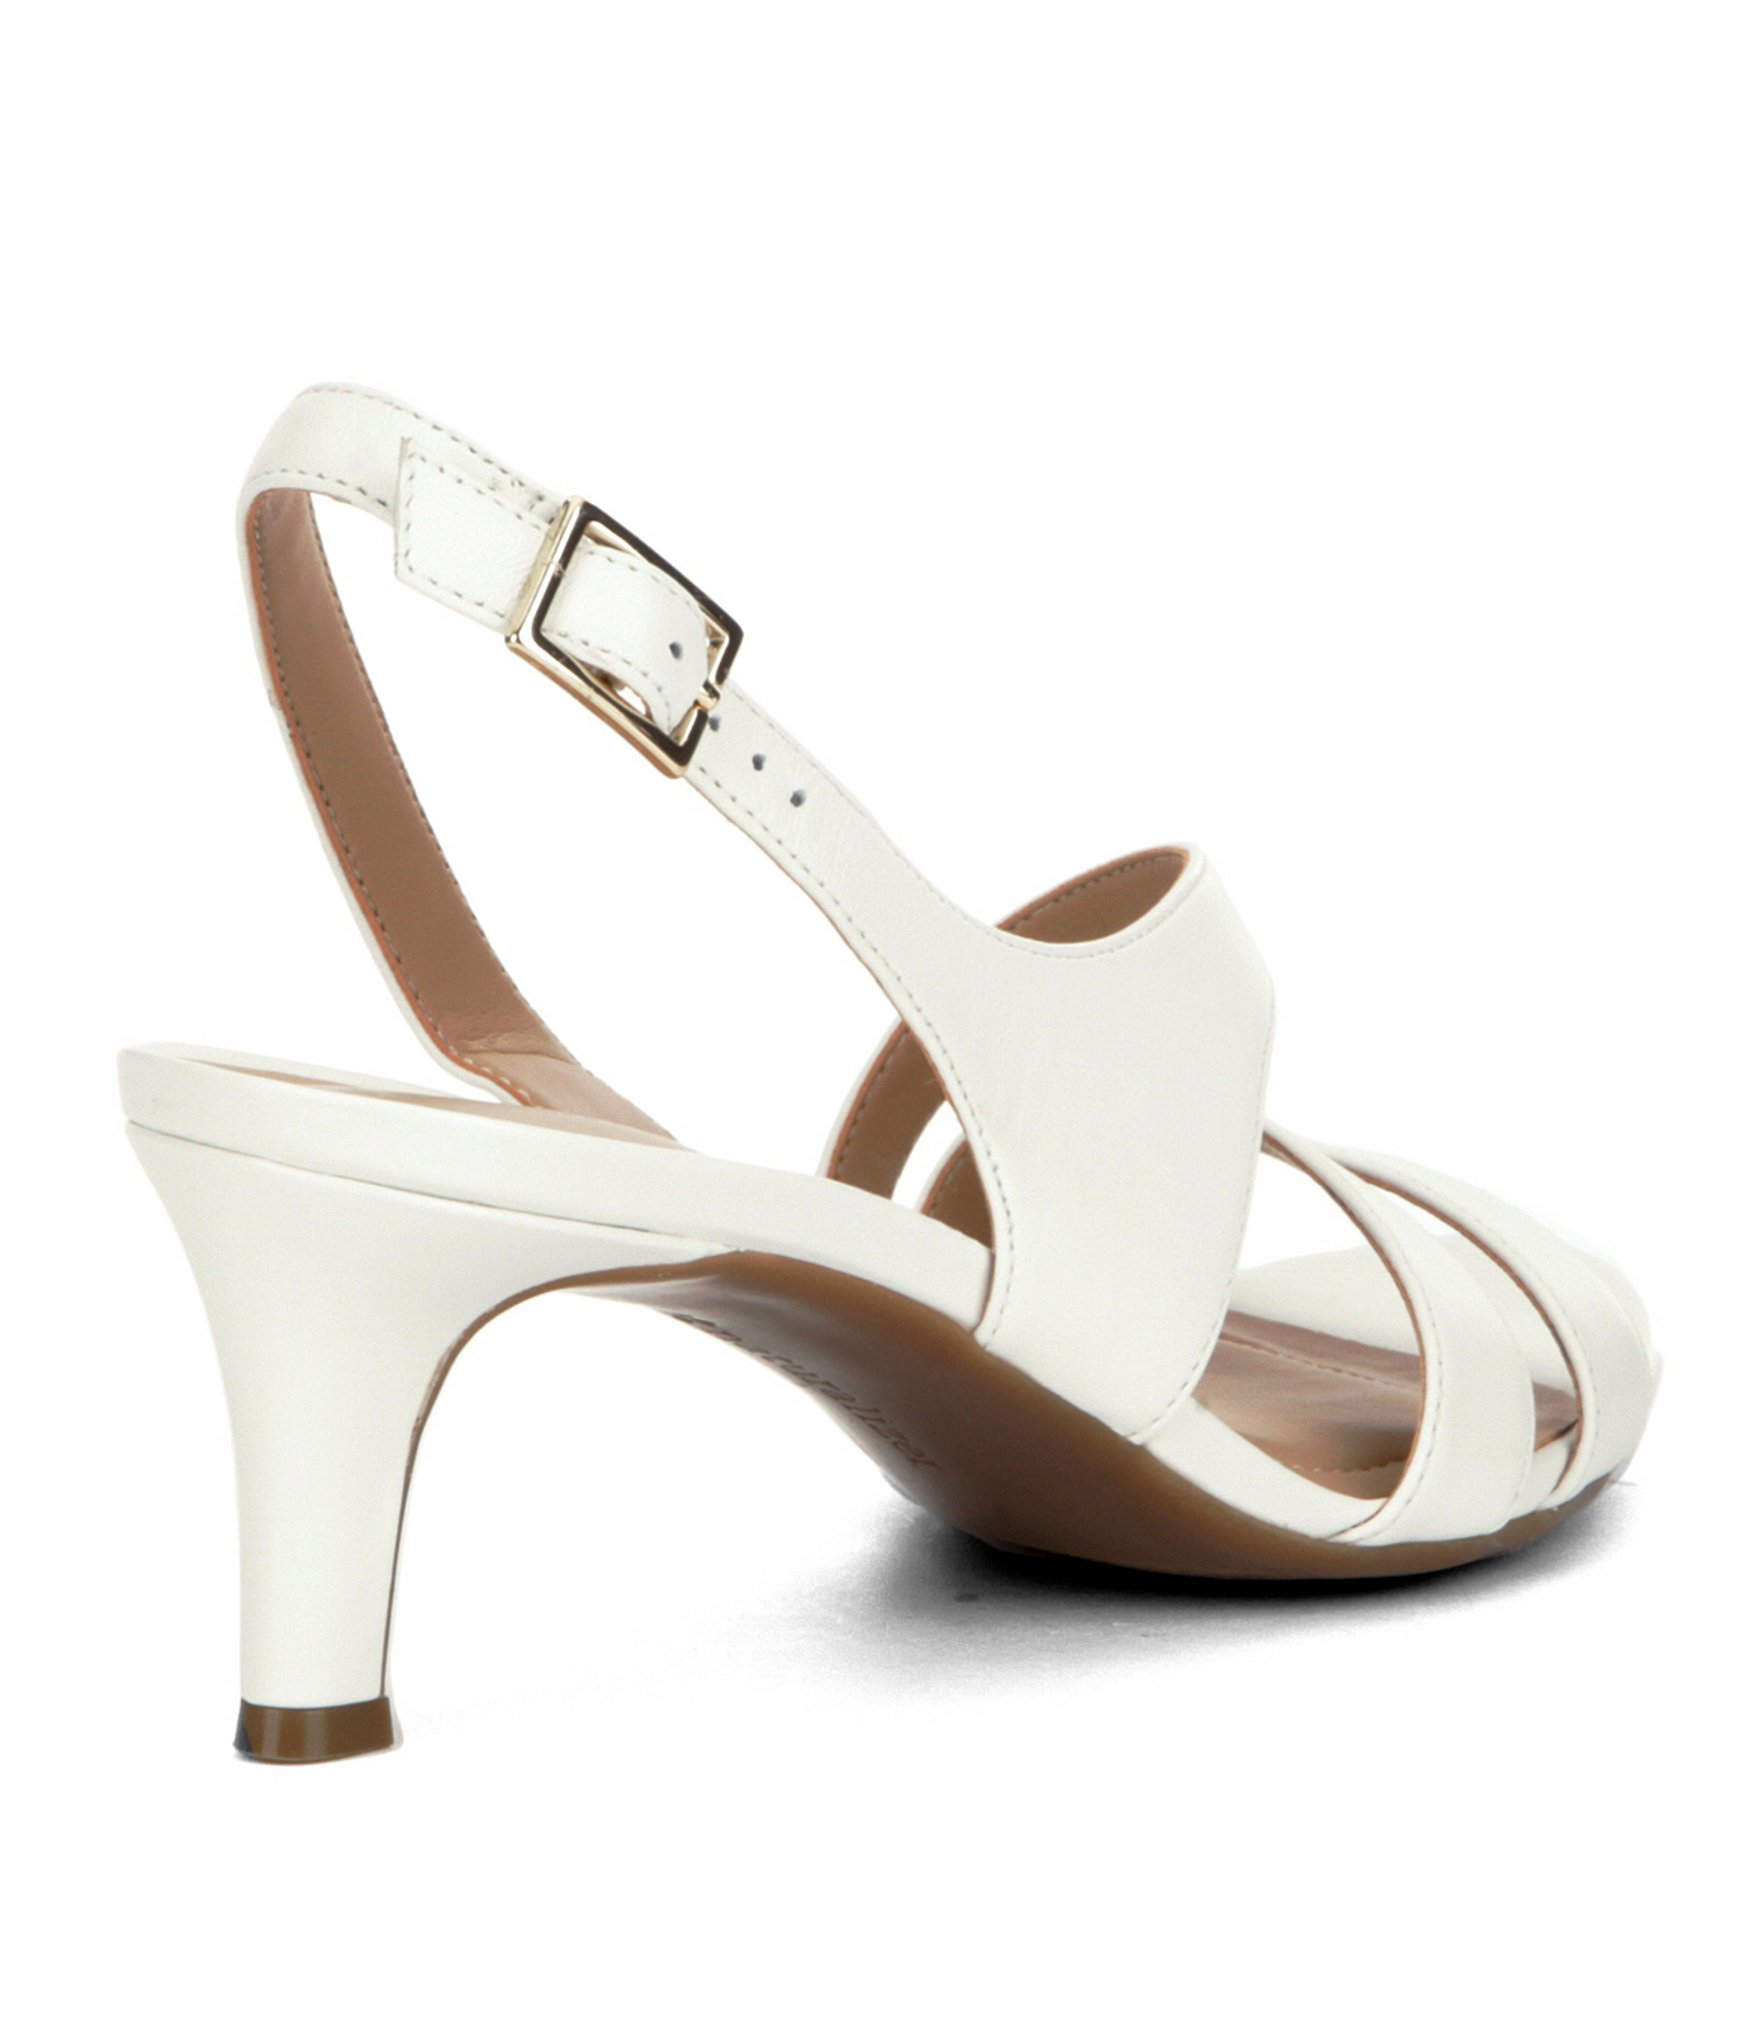 Lyst Naturalizer Taimi Dress Sandals In White